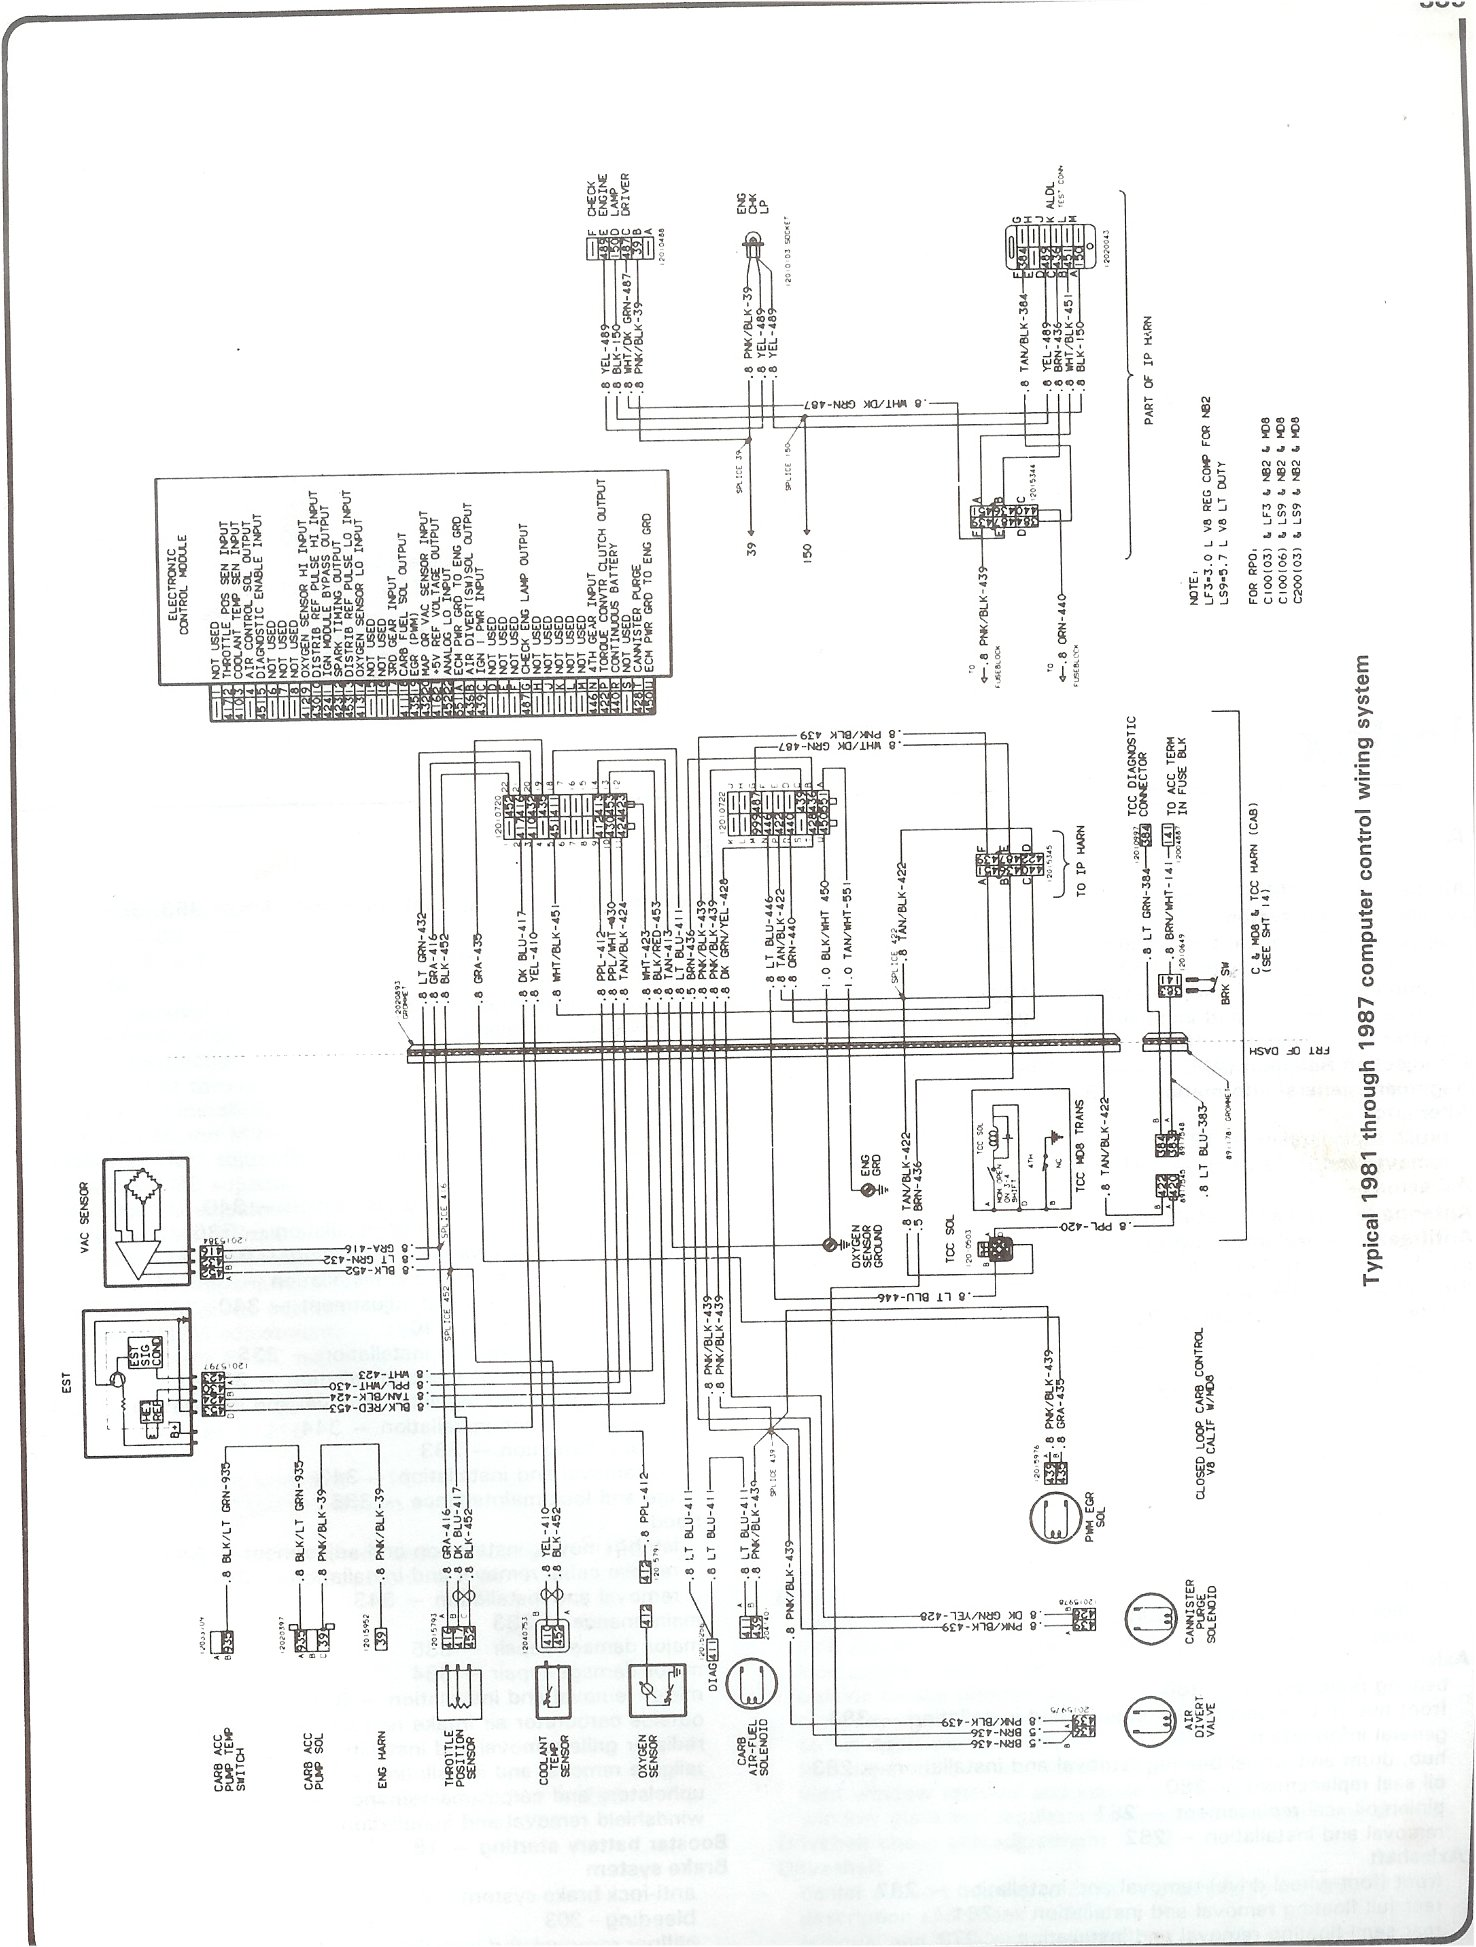 81 87_computer_control_wiring 86 chevy truck wiring diagram 82 chevy truck wiring diagram \u2022 free  at gsmportal.co